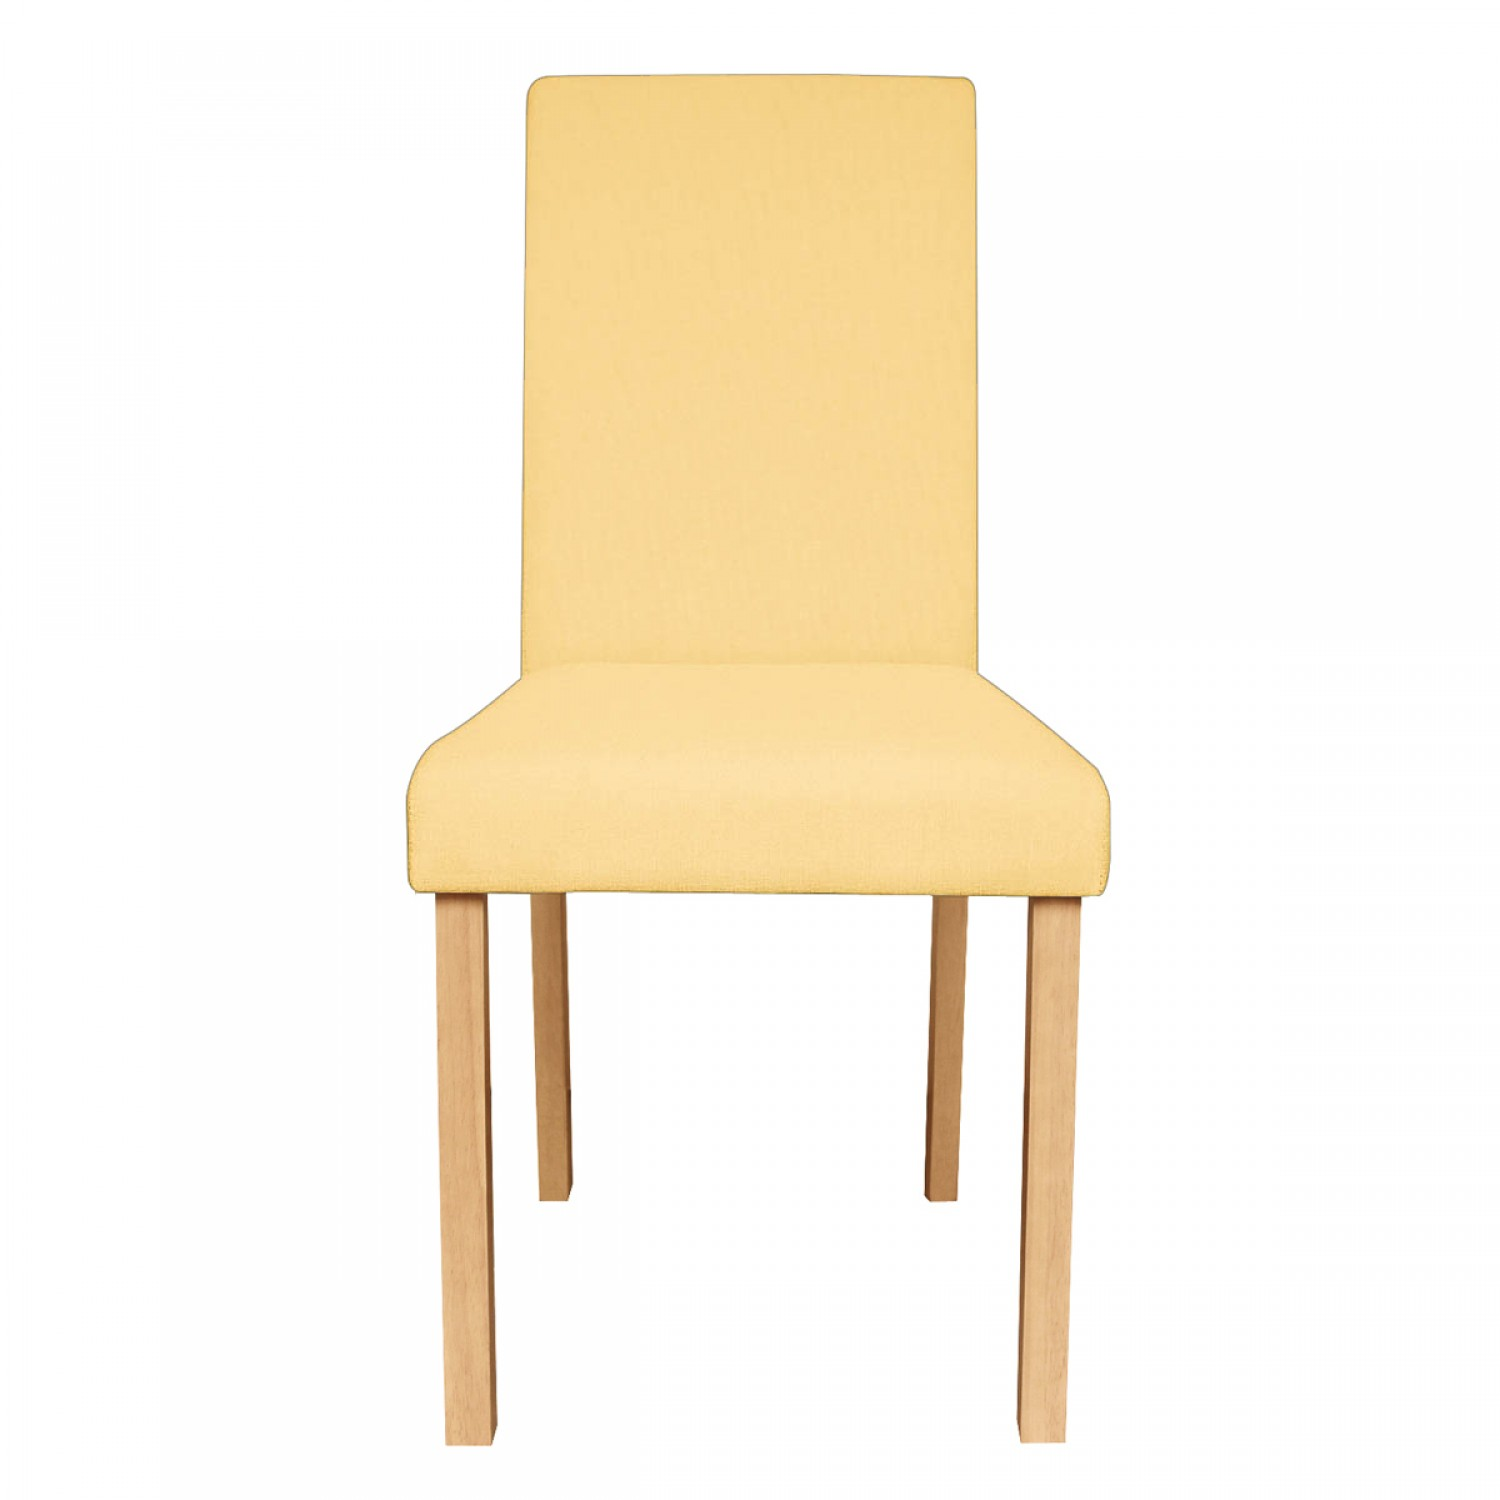 Chaise de salon en tissu jaune lot de 2 koya design for Chaise de cuisine jaune